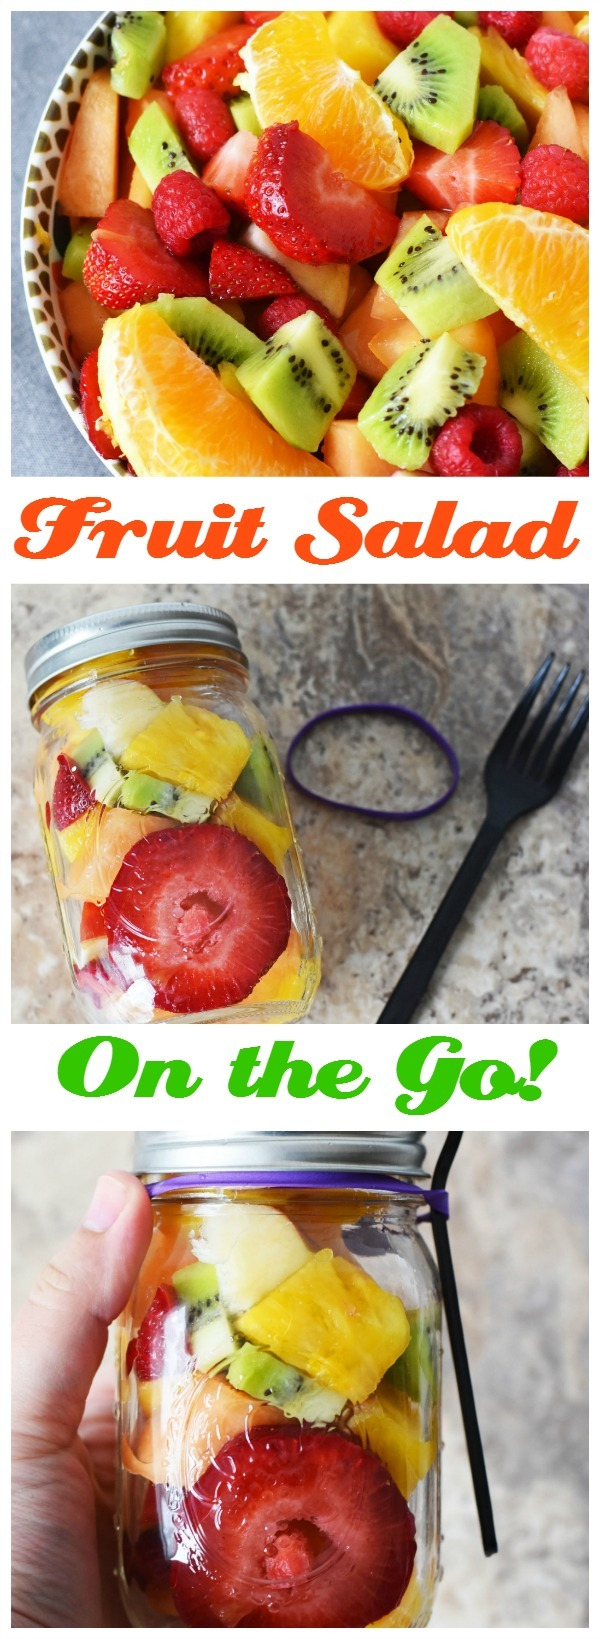 Fruit Salad in a Jar